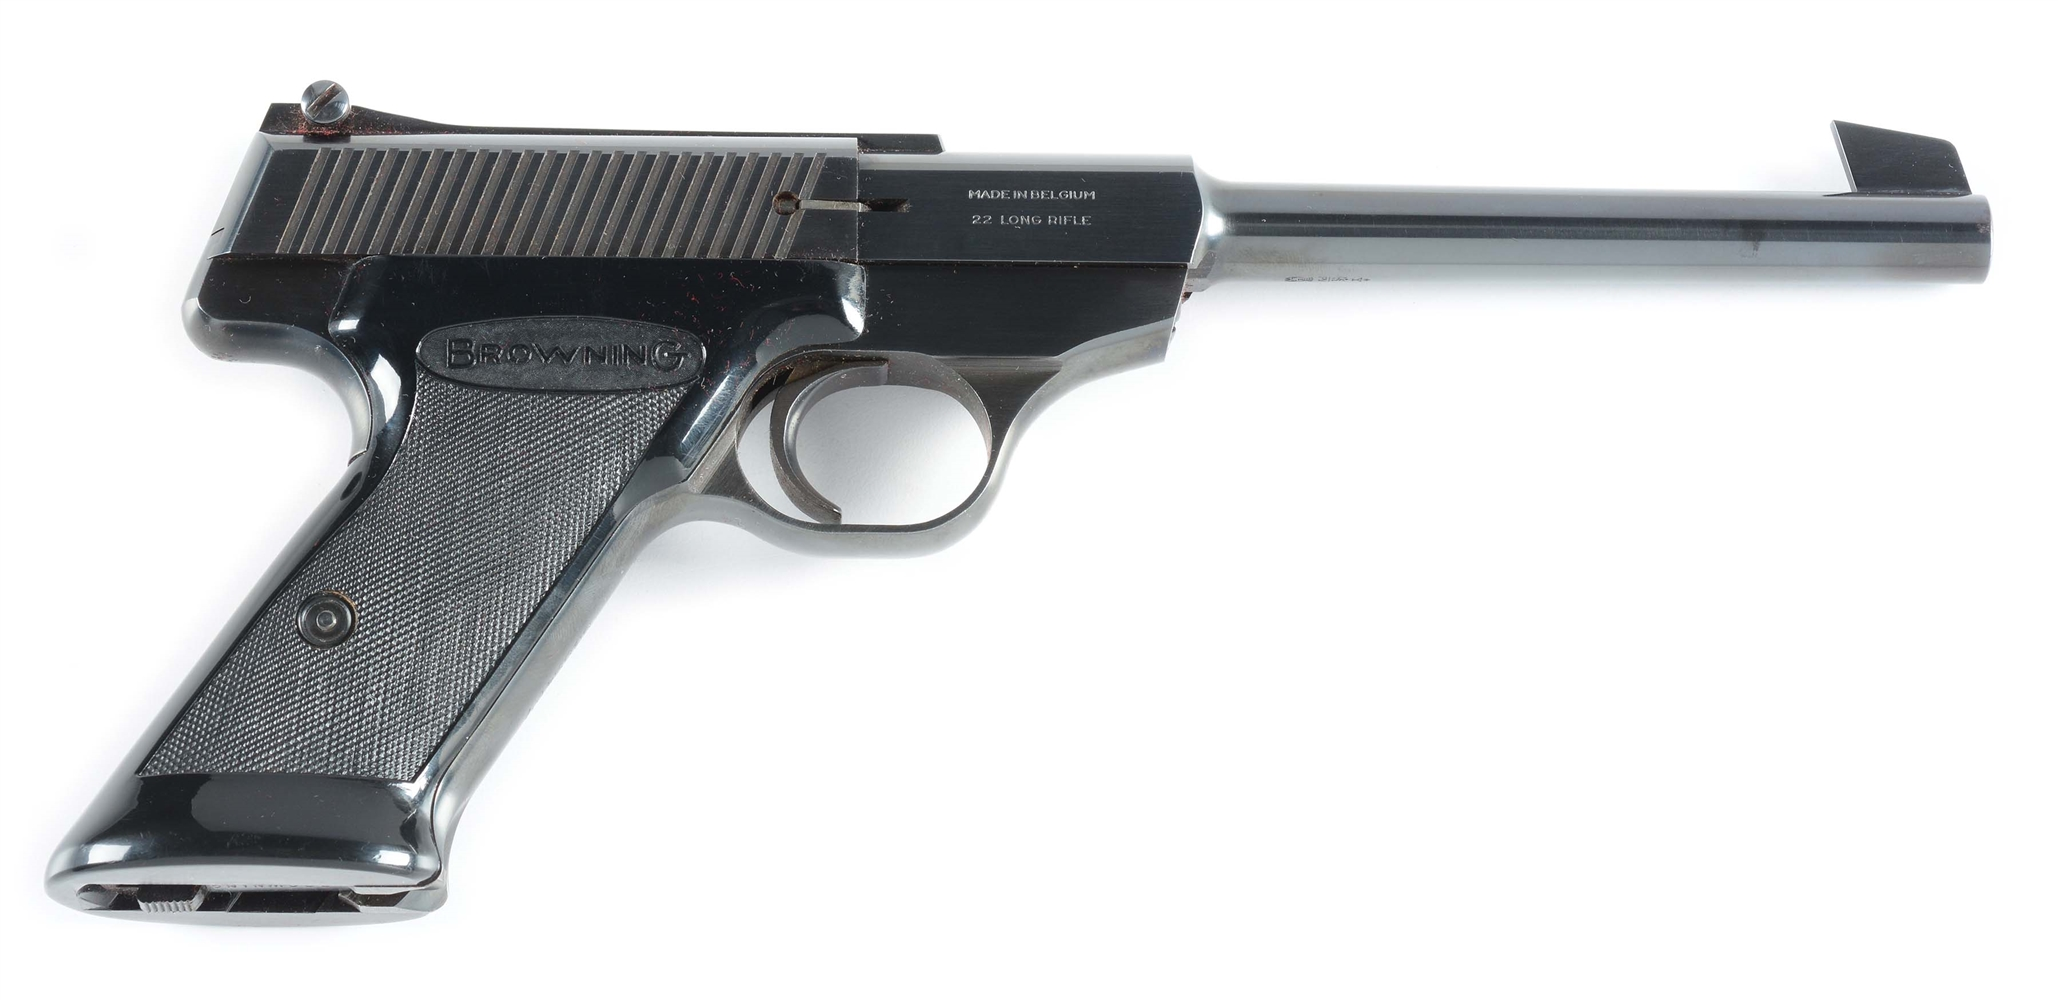 (C) Browning Nomad Semi-Automatic Pistol (1967).